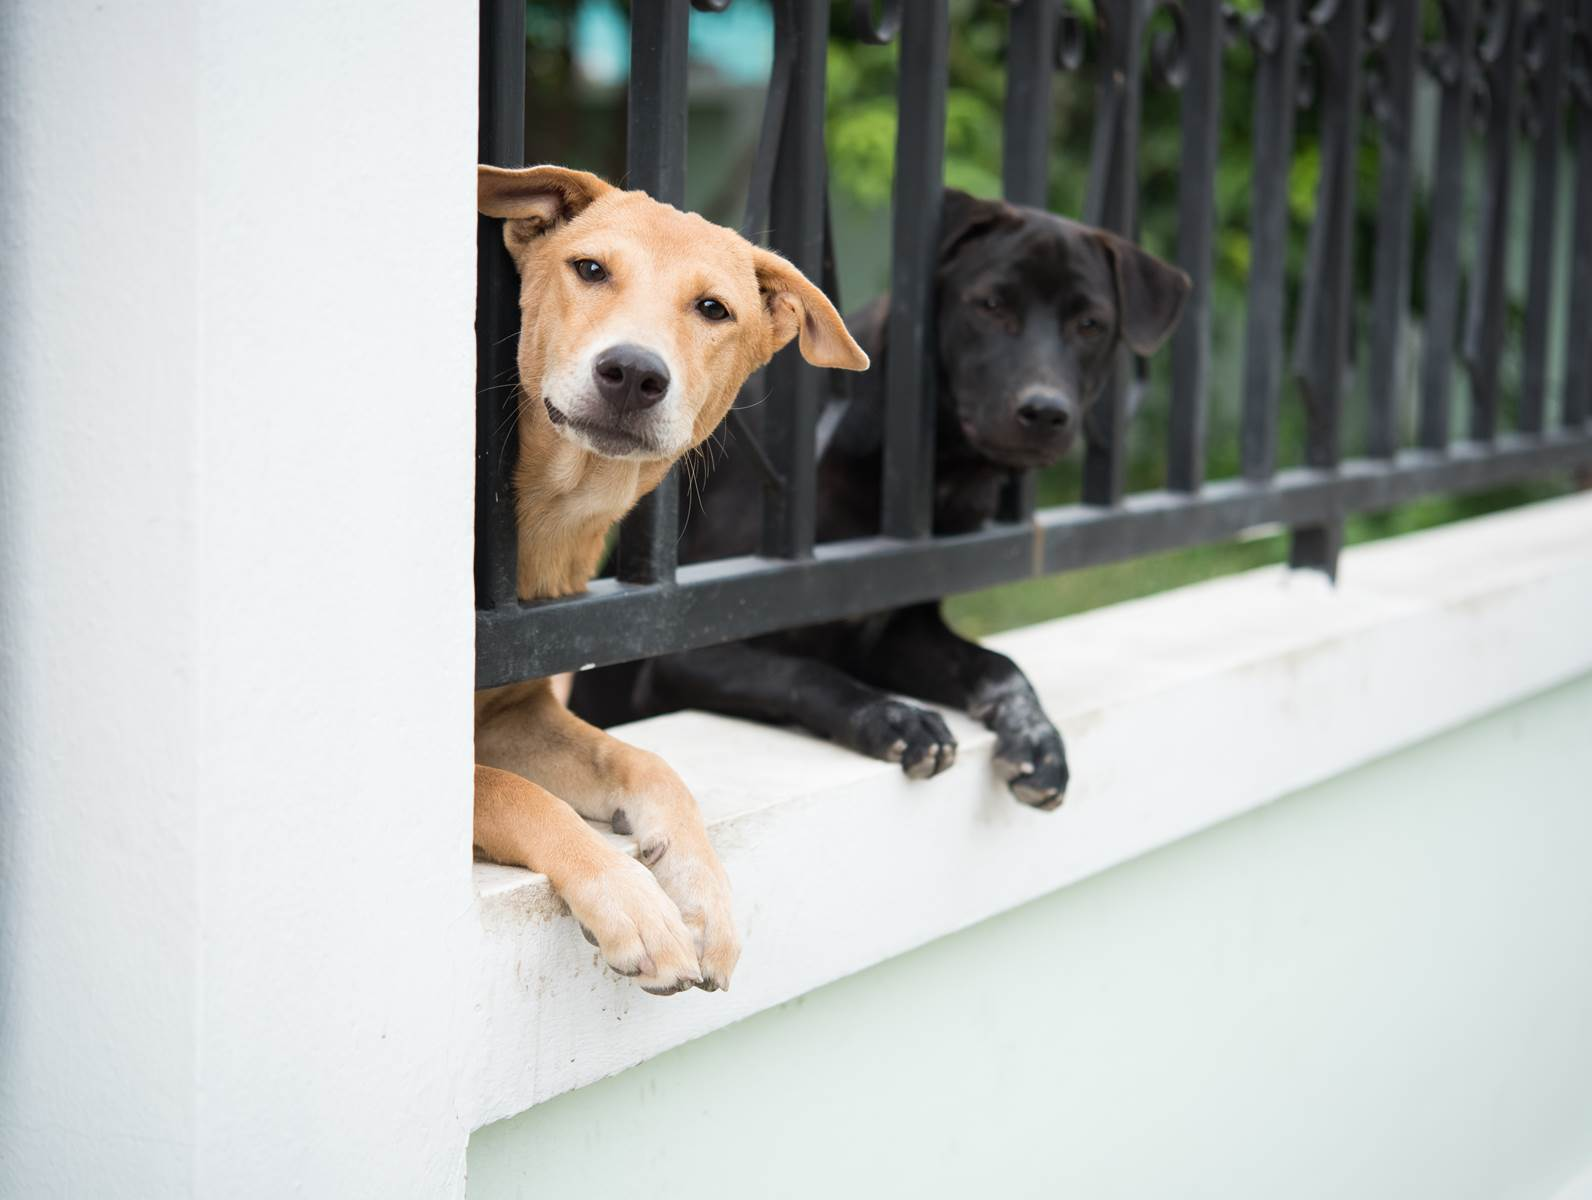 Take care of your safety - choose balcony handrails